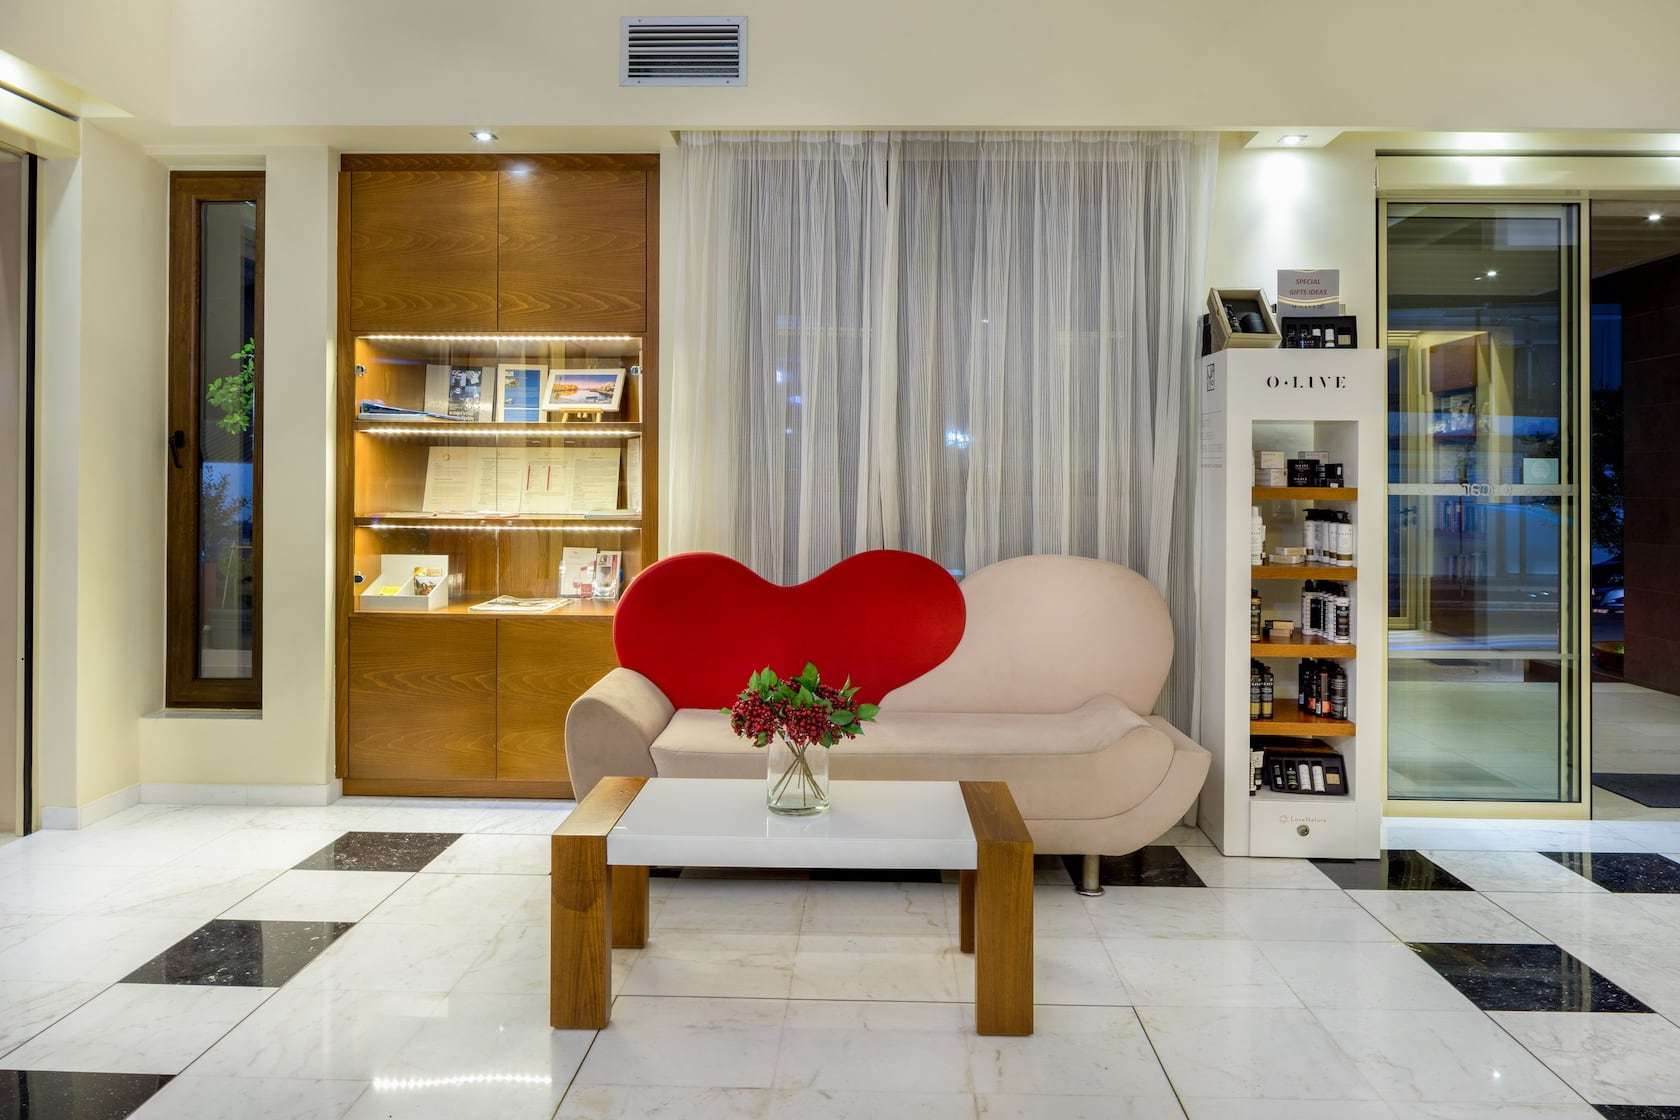 Sofa with heart-shaped back and a little table in the reception area in Oscar Suites & Village.